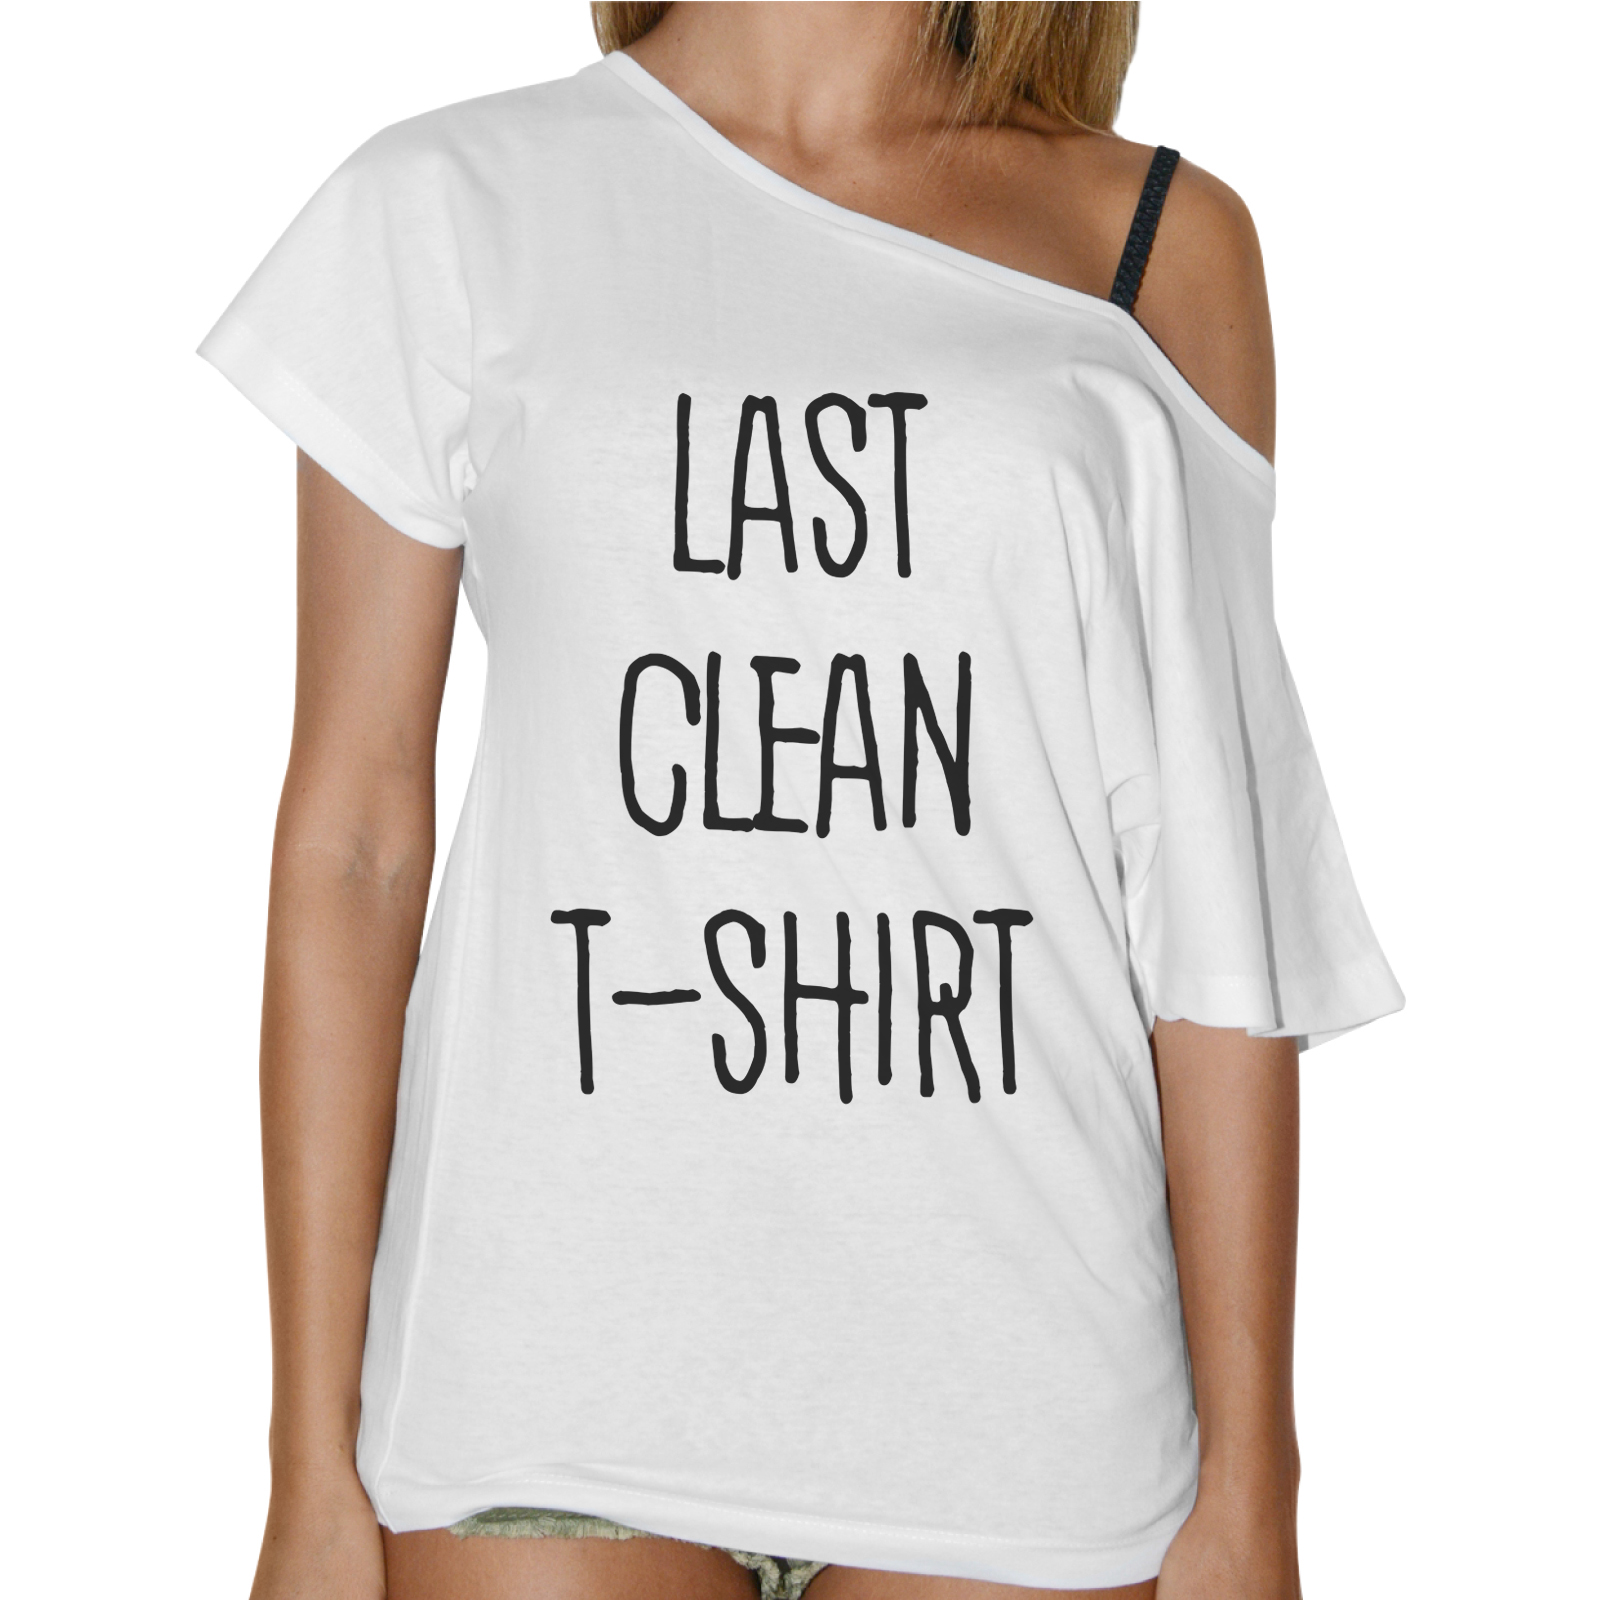 T-Shirt Donna Collo Barca LAST CLEAN T-SHIRT